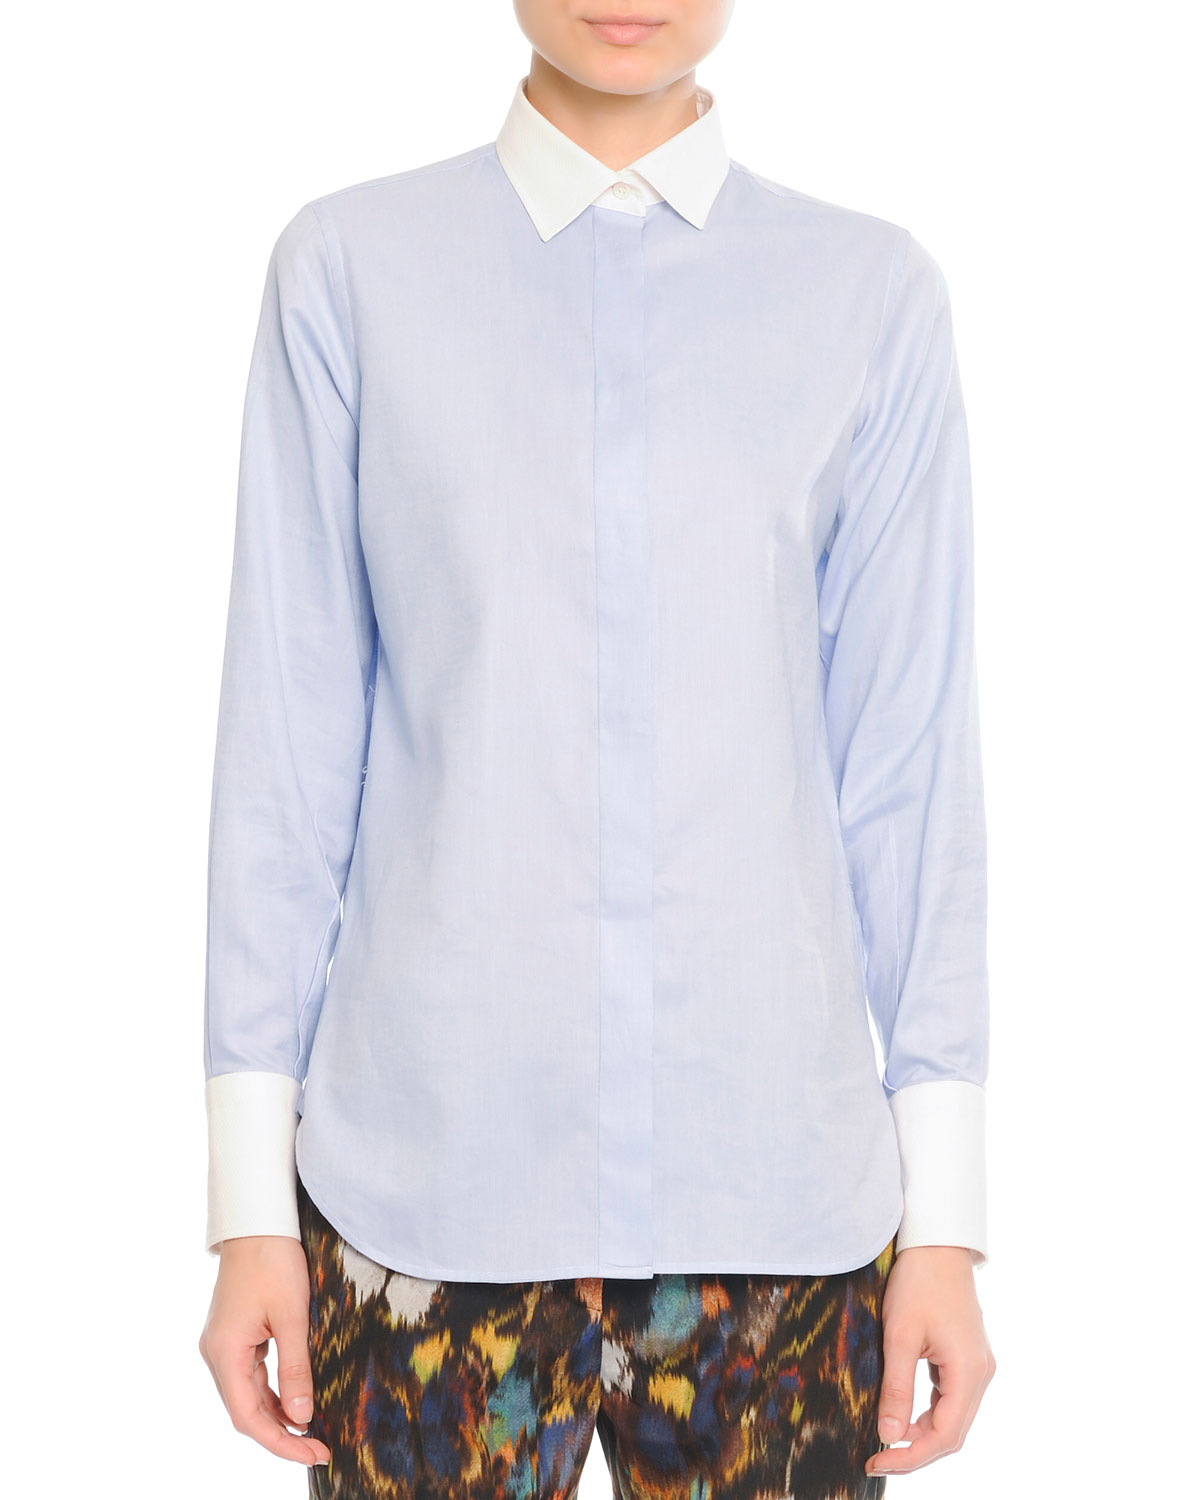 White-Cuff-and-Collared Cotton Blouse